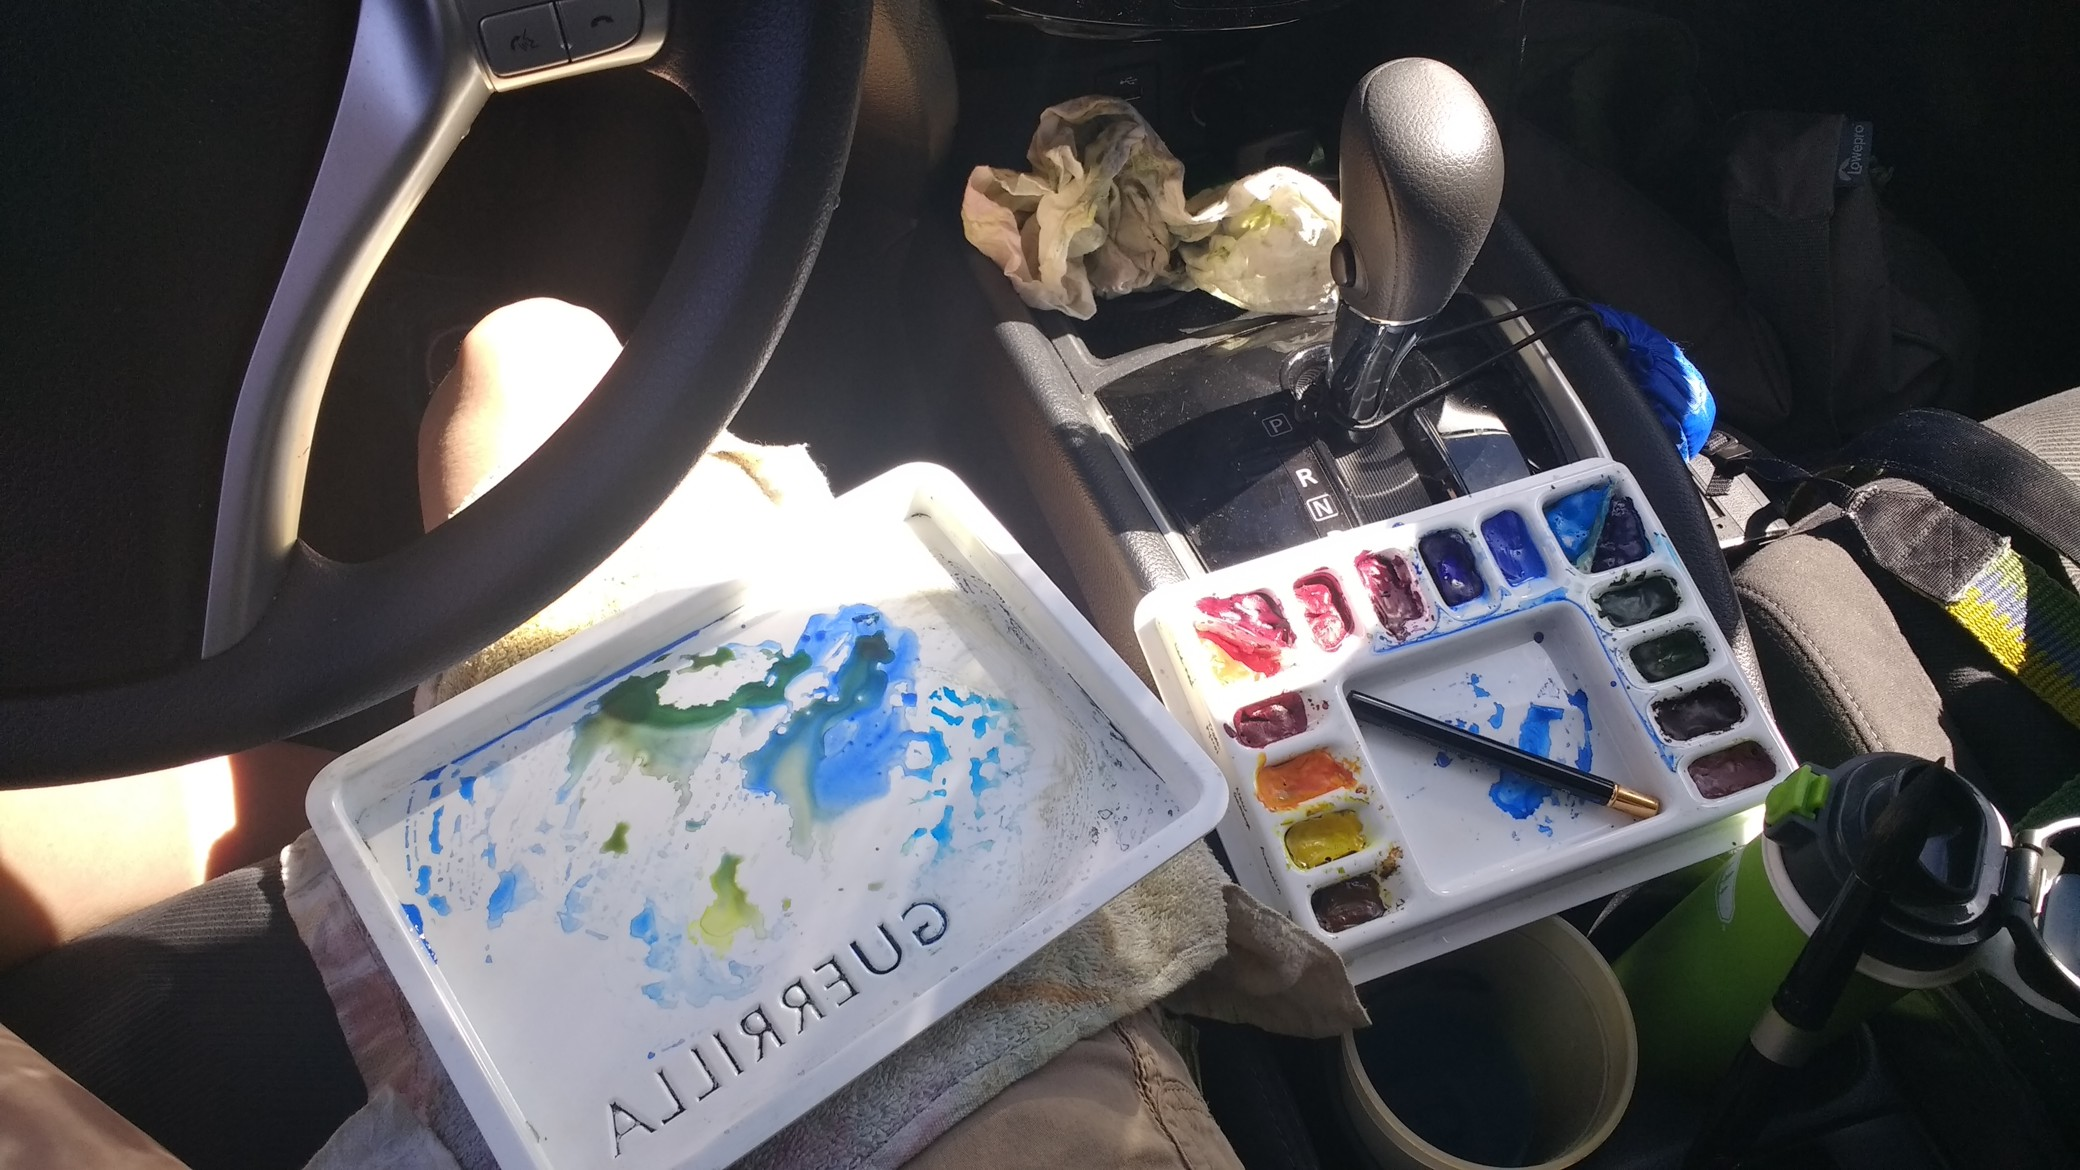 Sometimes I stay in my car and paint.